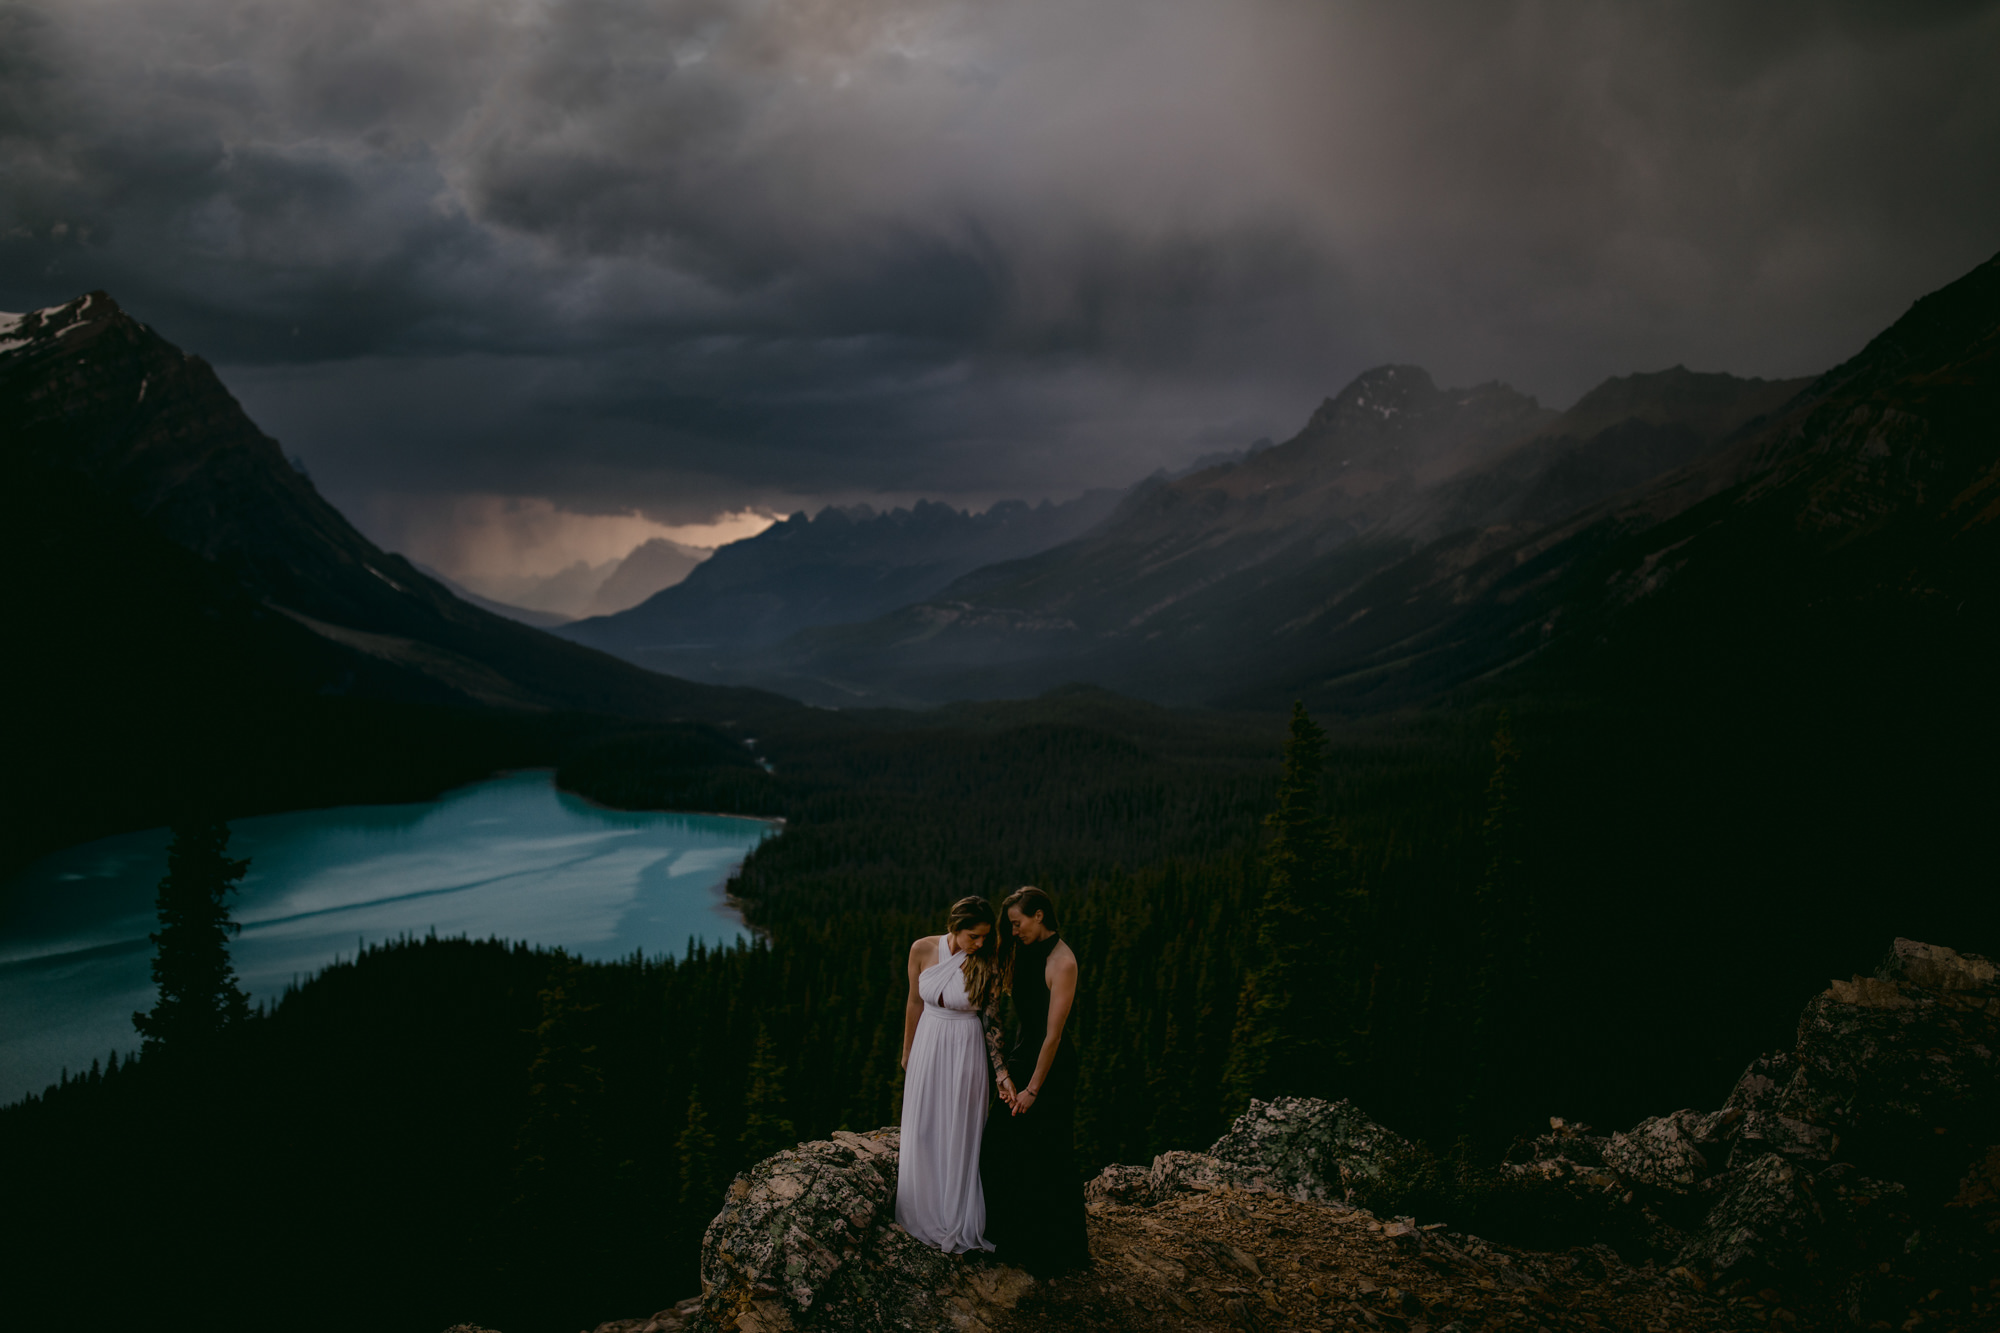 Brides at Lake Louise viewpoint in Banff National Park - photo by Gabe McClintock